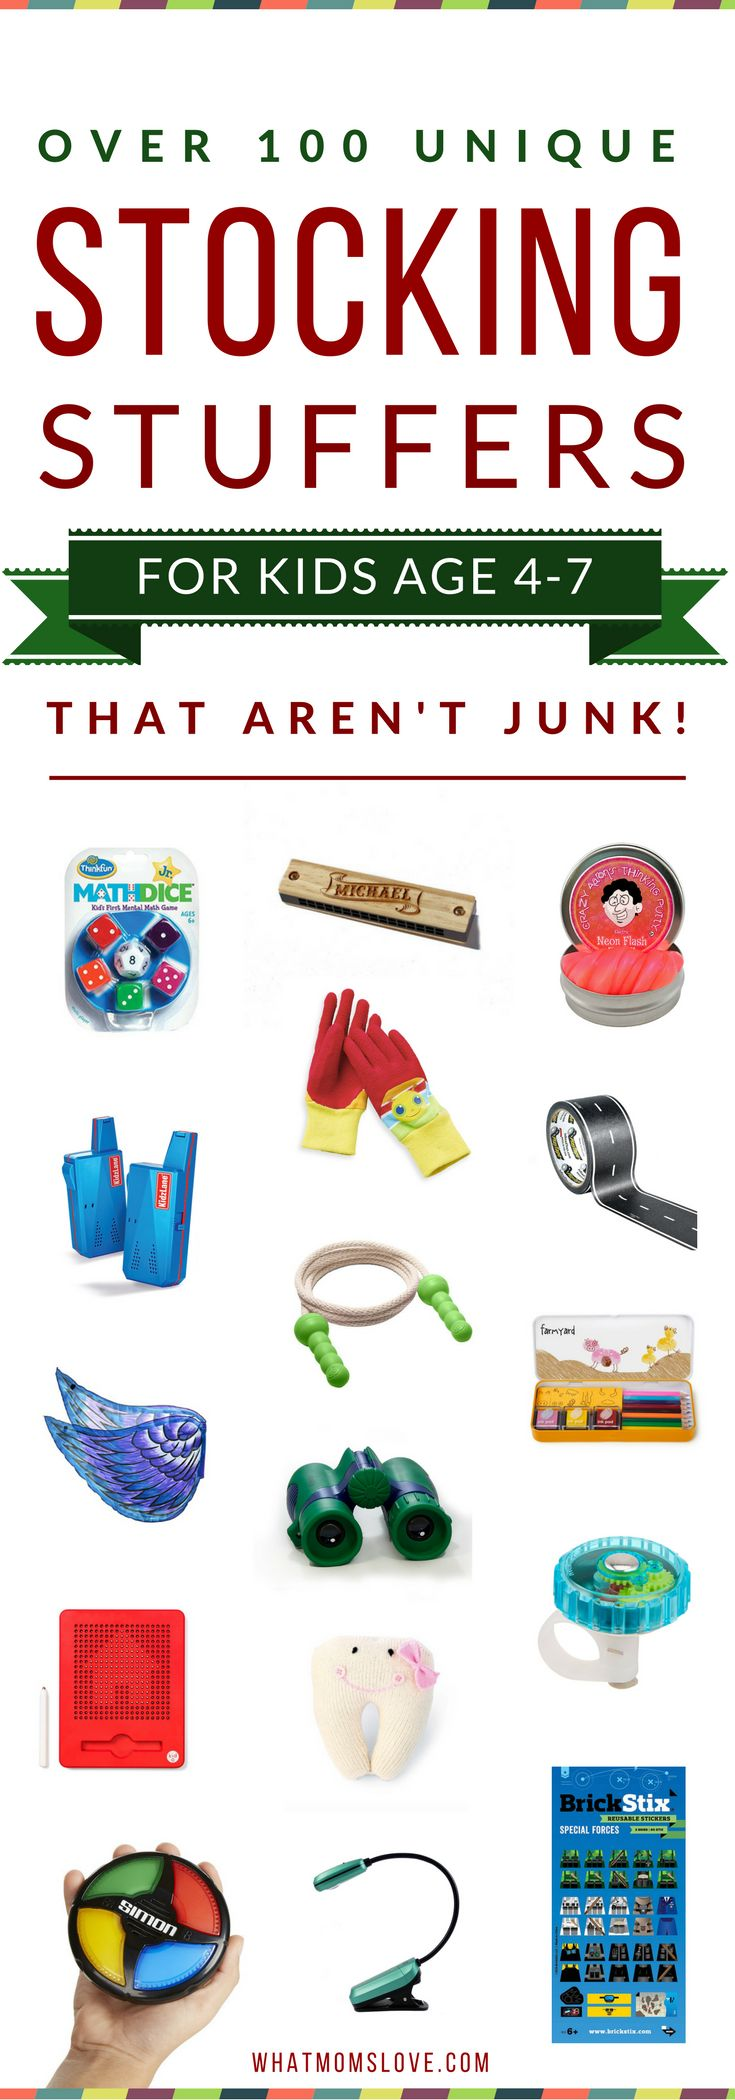 Best Stocking Stuffers For Kids Age 4-7 | Unique & Fun Gift Ideas For Your Kids' Stockings | Get the full list of over 200 creative ideas for kids of all ages and stages from babies to teens at whatmomslove.com